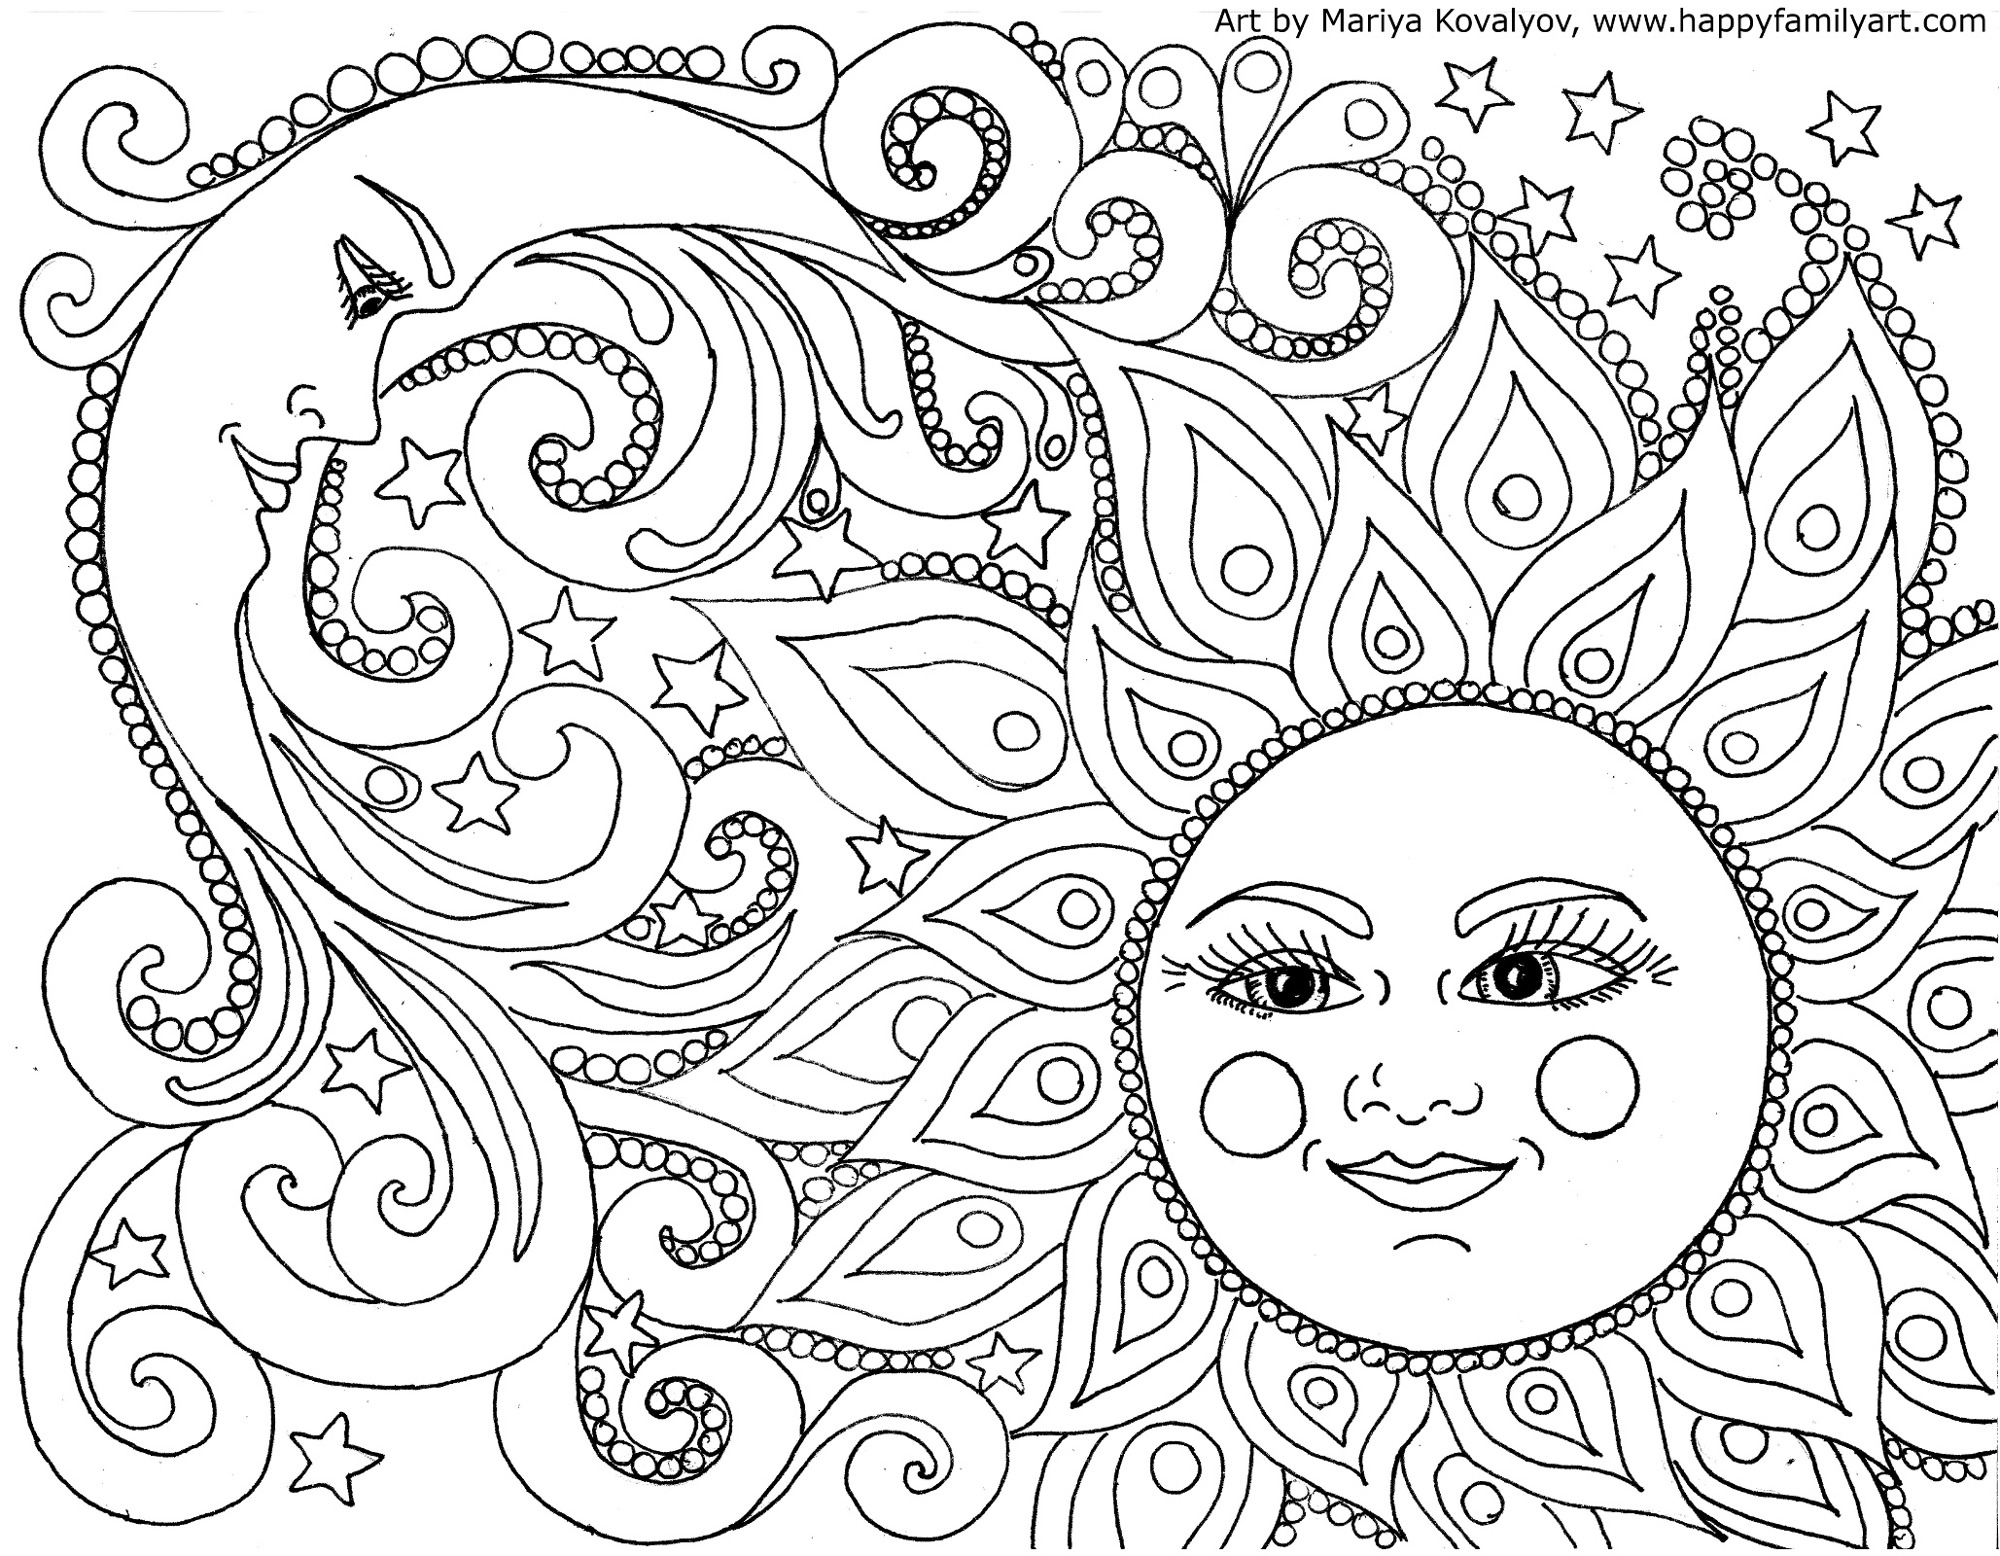 2000x1556 I Made Many Great, Fun And Original Coloring Pages. Color Your